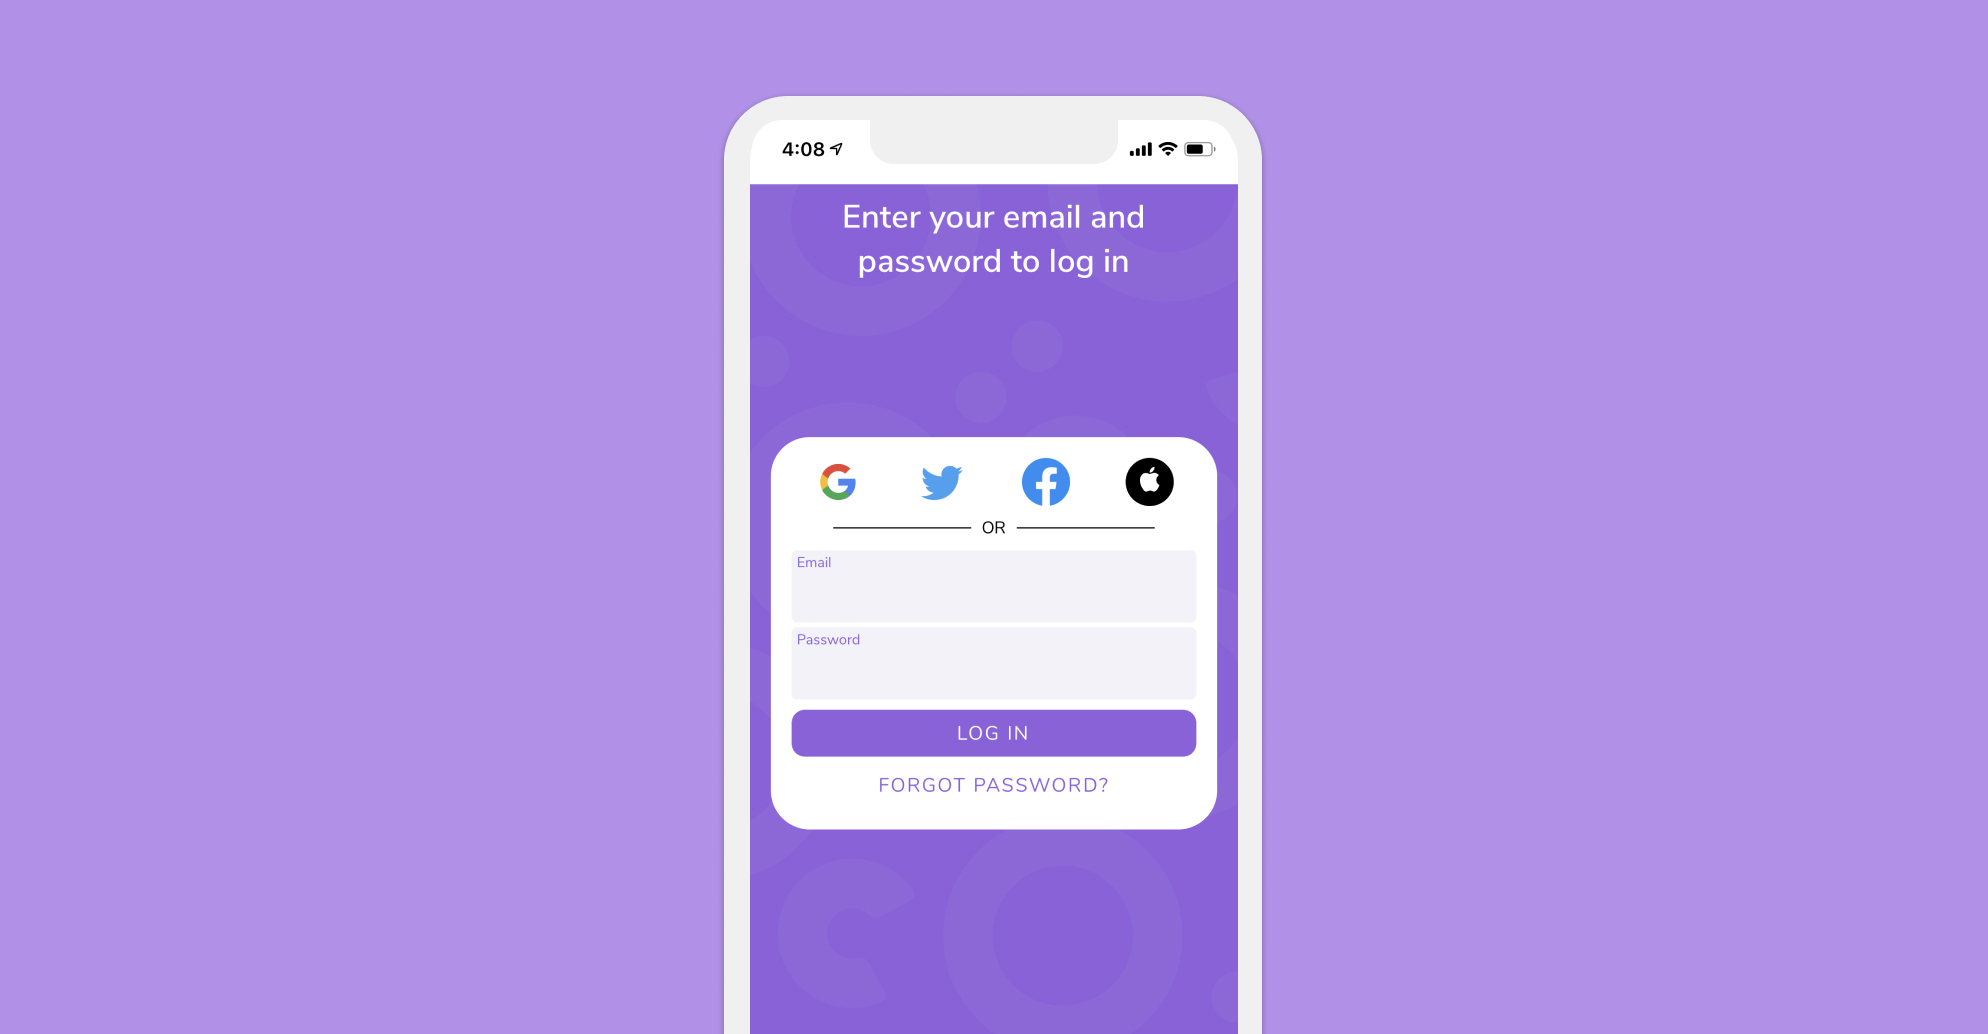 Open up the HiHello: Digital Business Cards and Contact Manager app and log in.